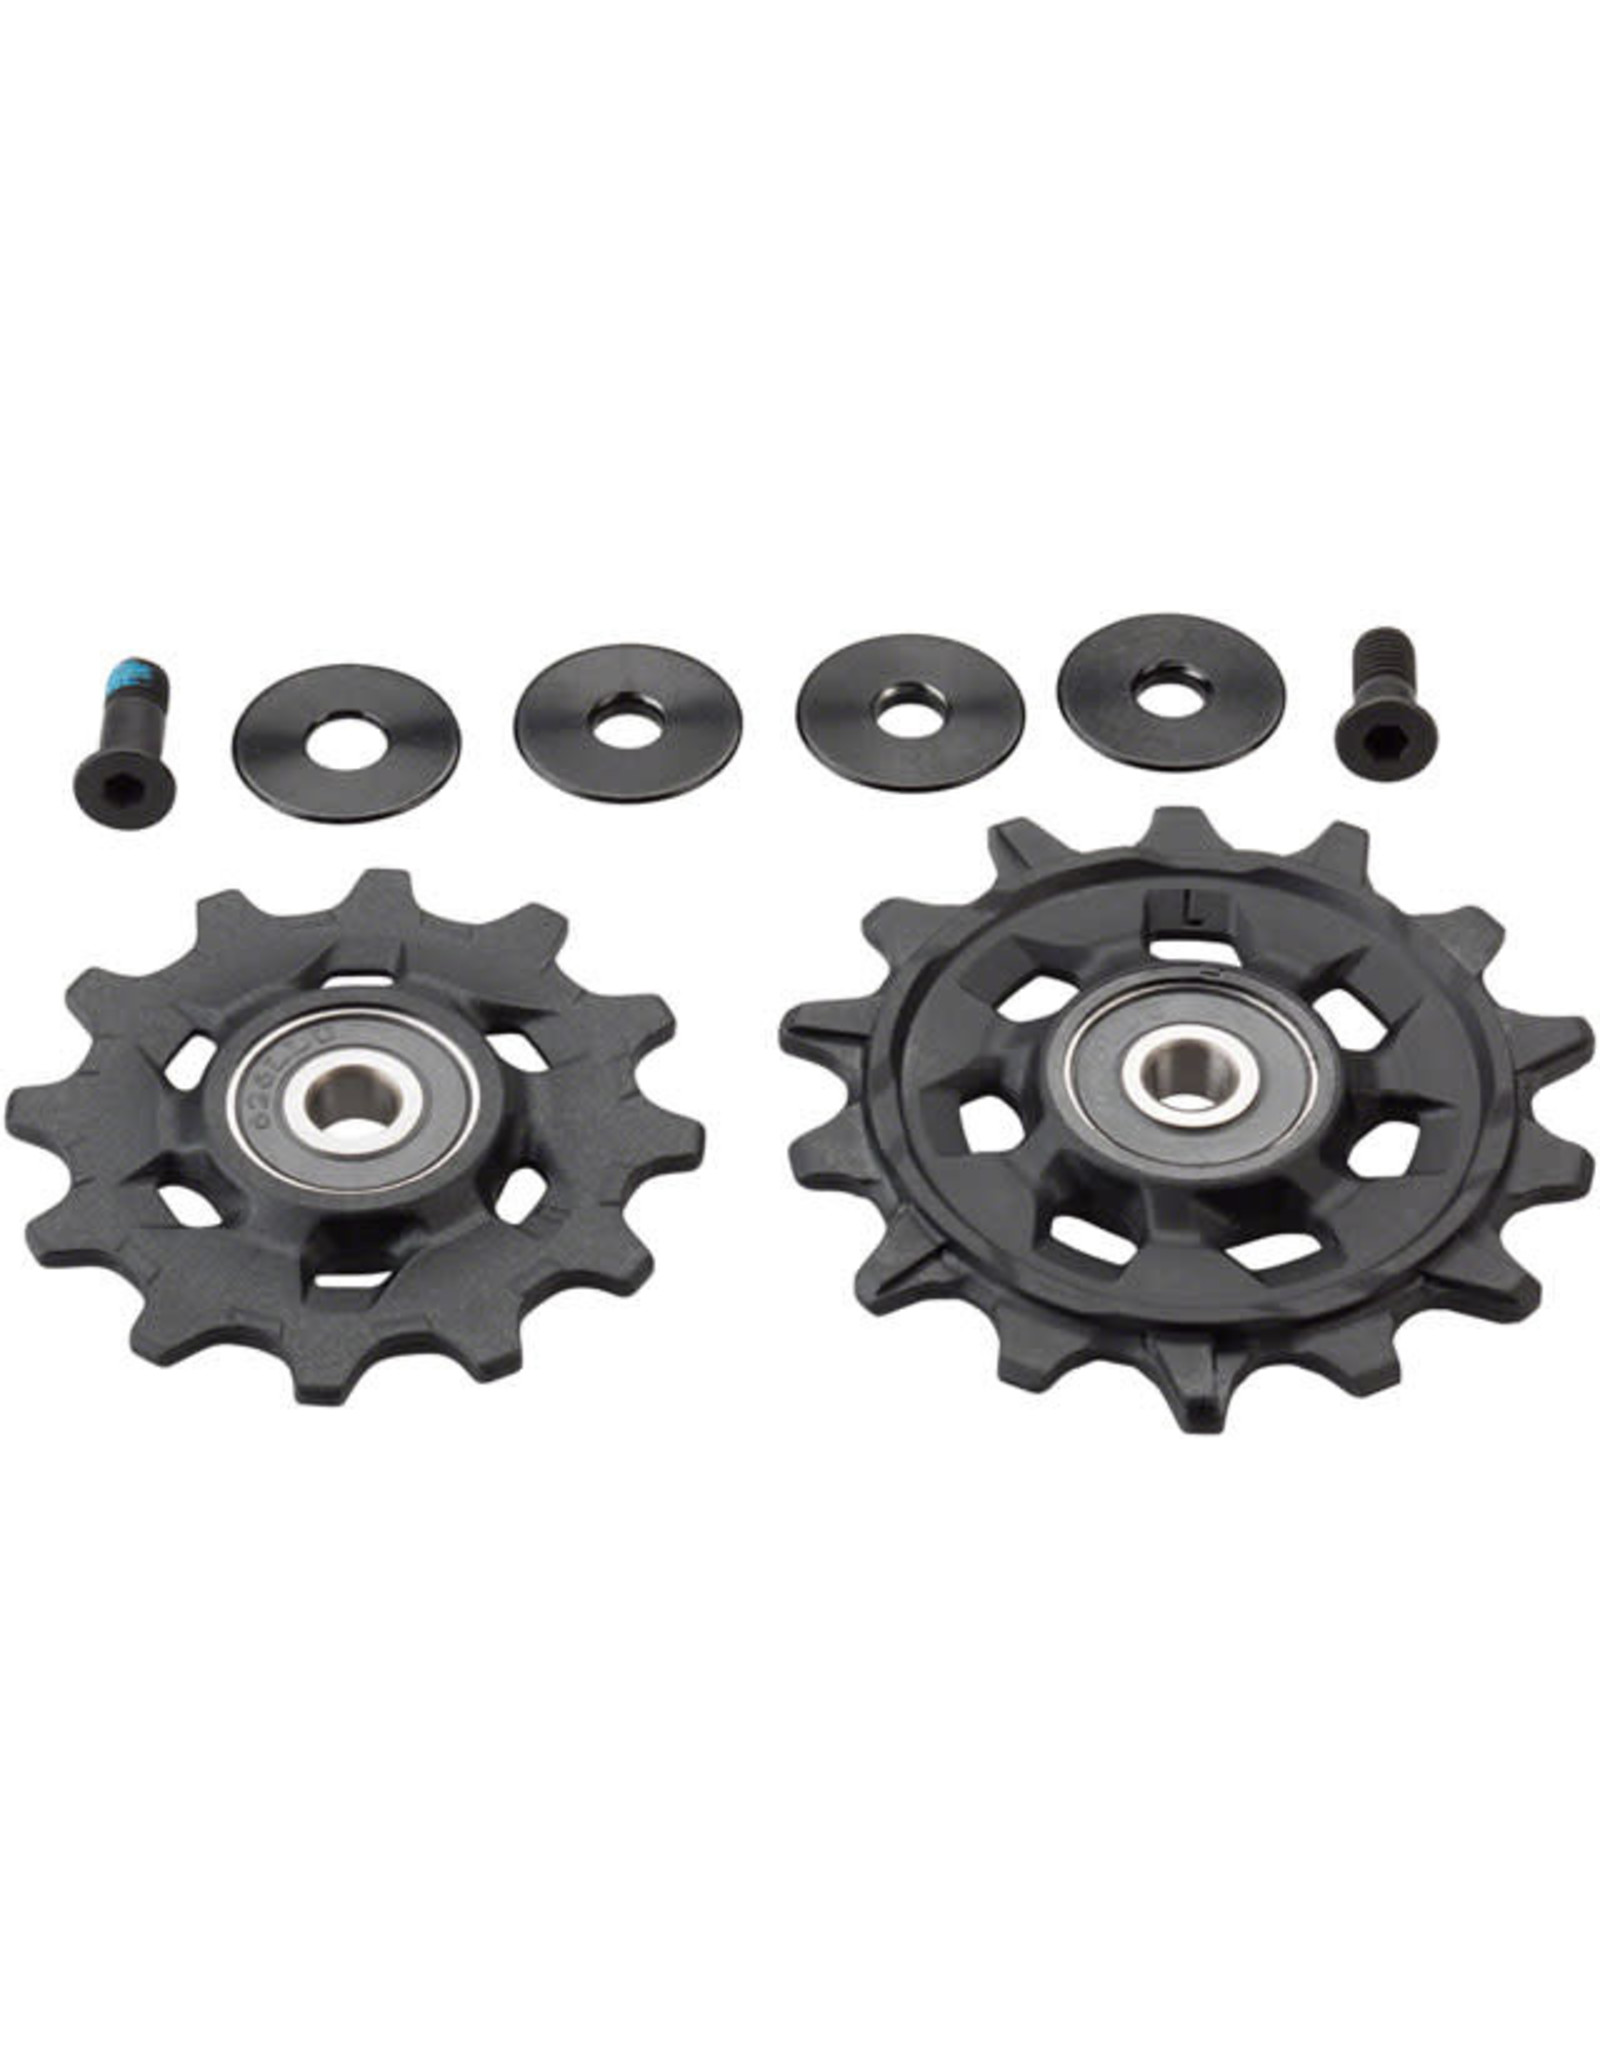 SRAM SRAM GX Eagle Pulley Kit